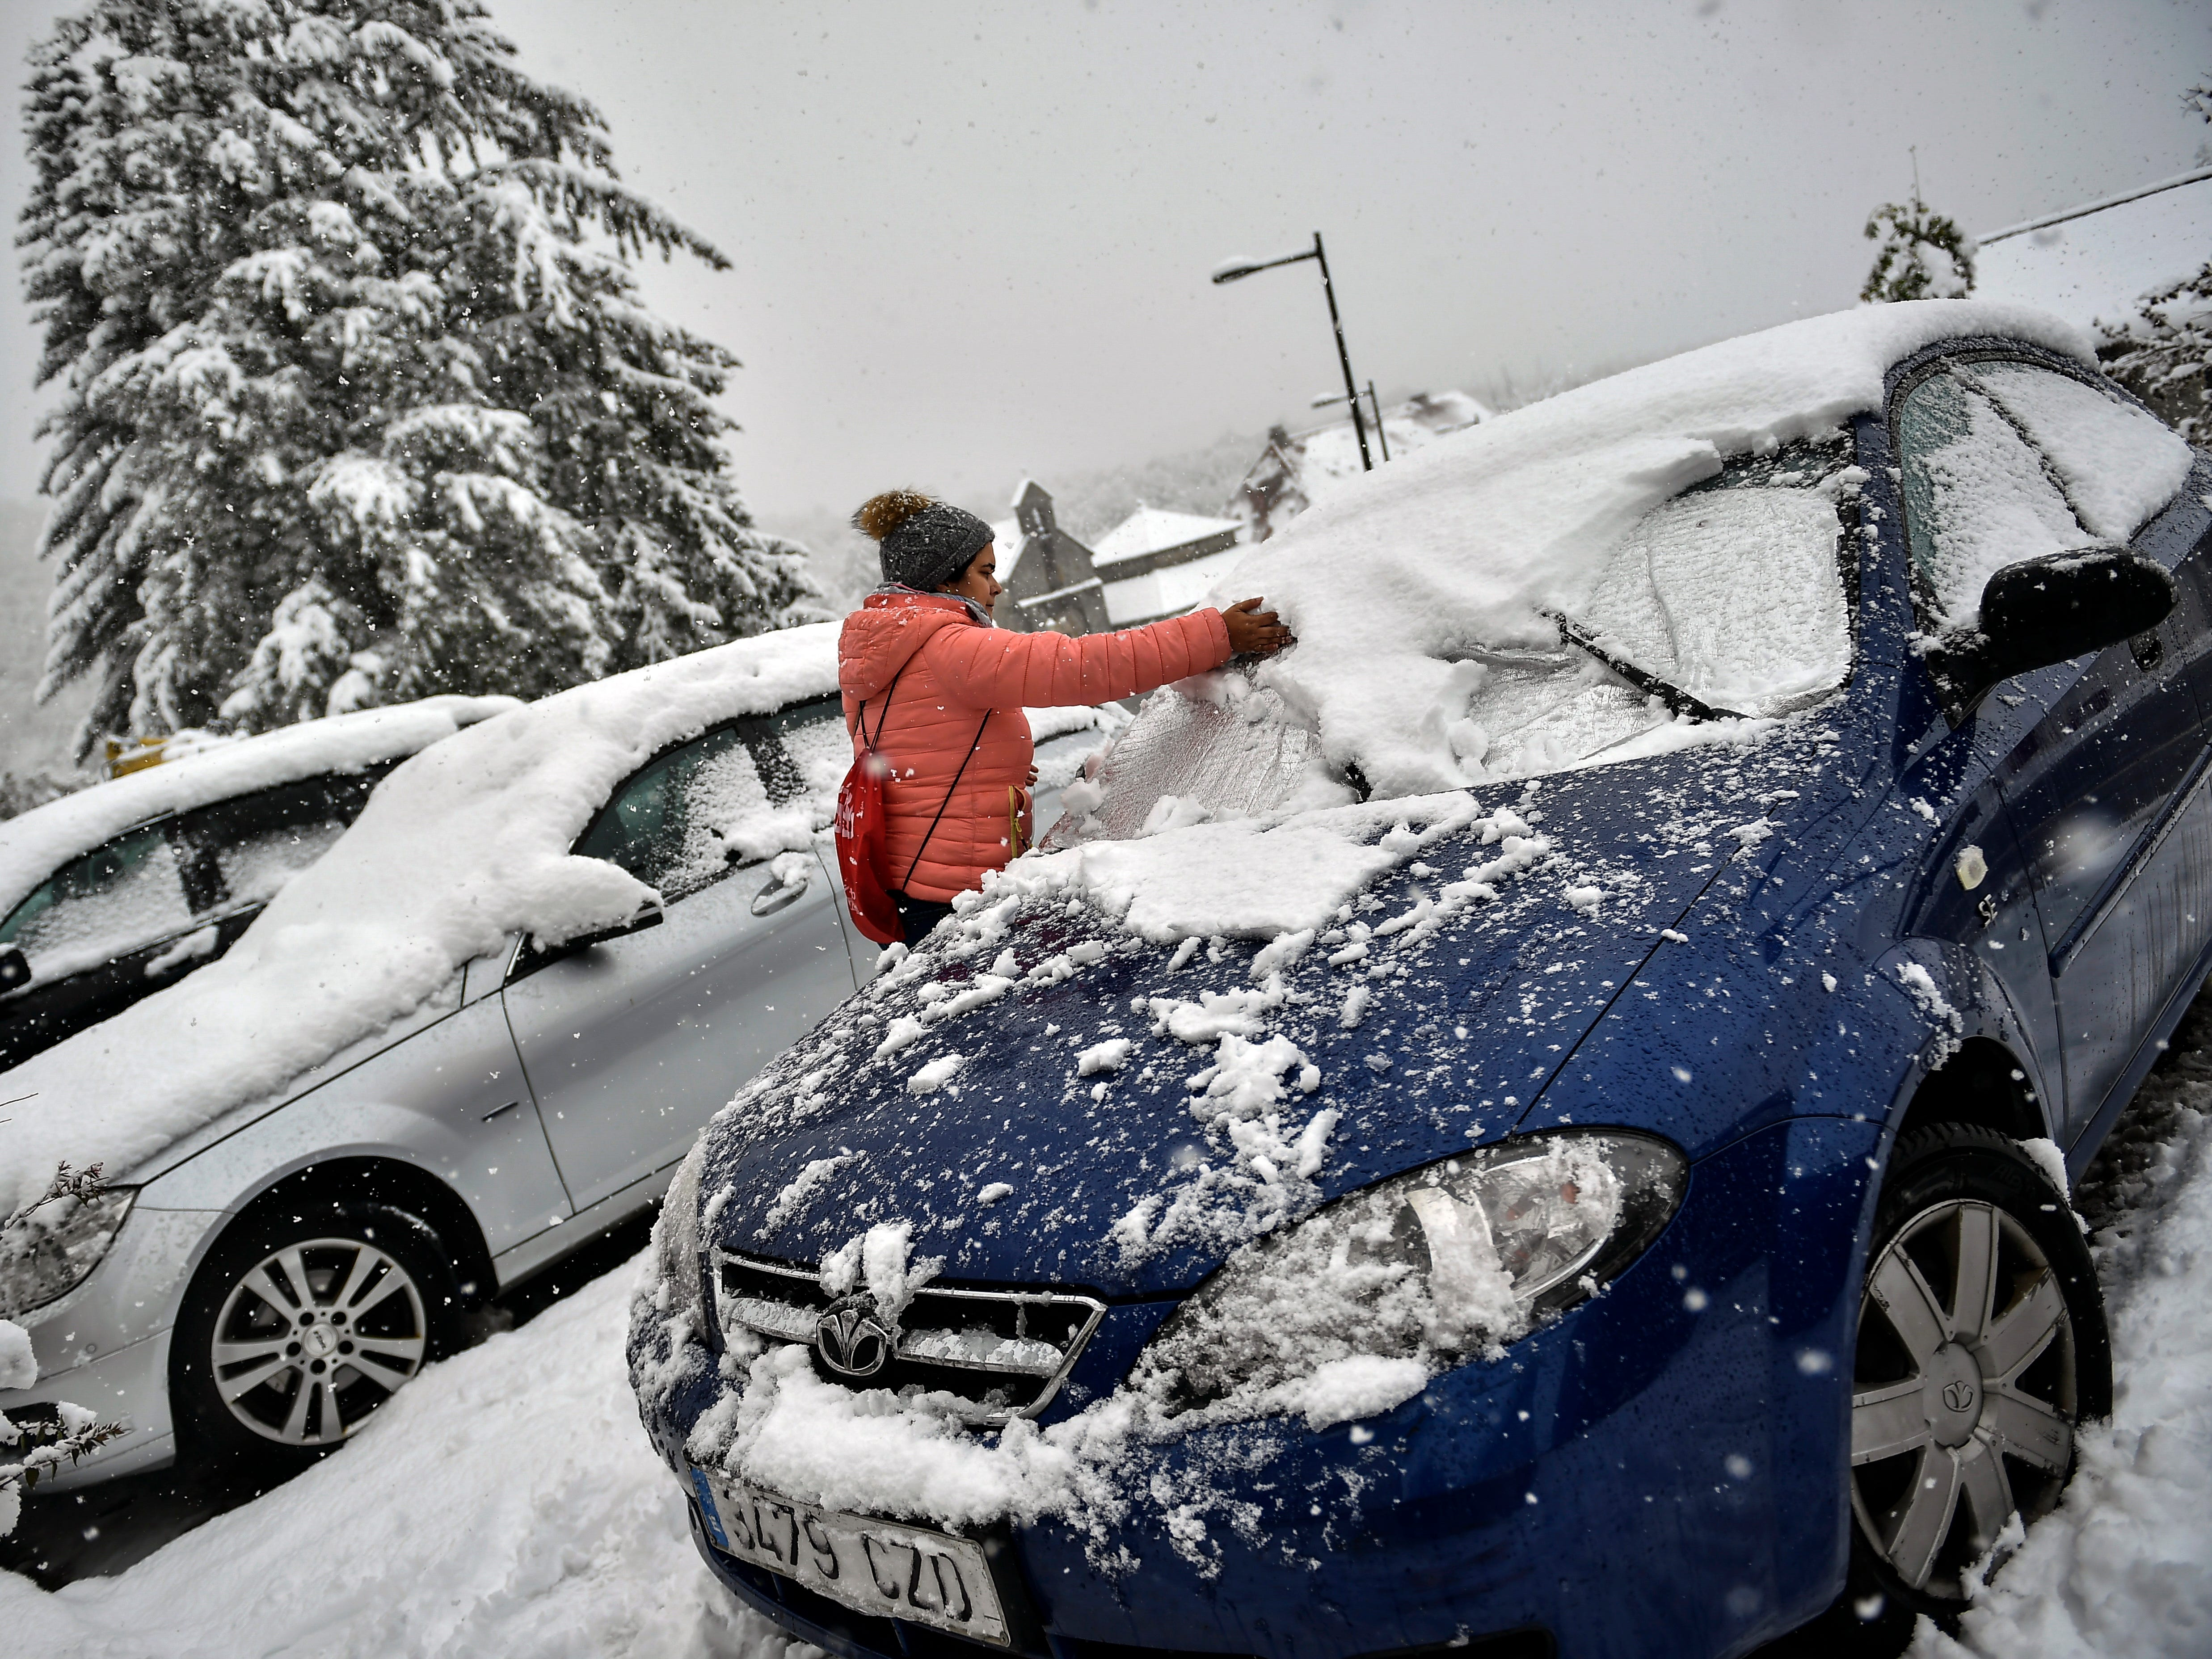 A woman cleans her car covered by the snow during an autumn day, in Roncesvalles, northern Spain, Monday, Oct. 29, 2018. Authorities predict heavy snowfall and extreme low temperatures across Northern Spain this week.